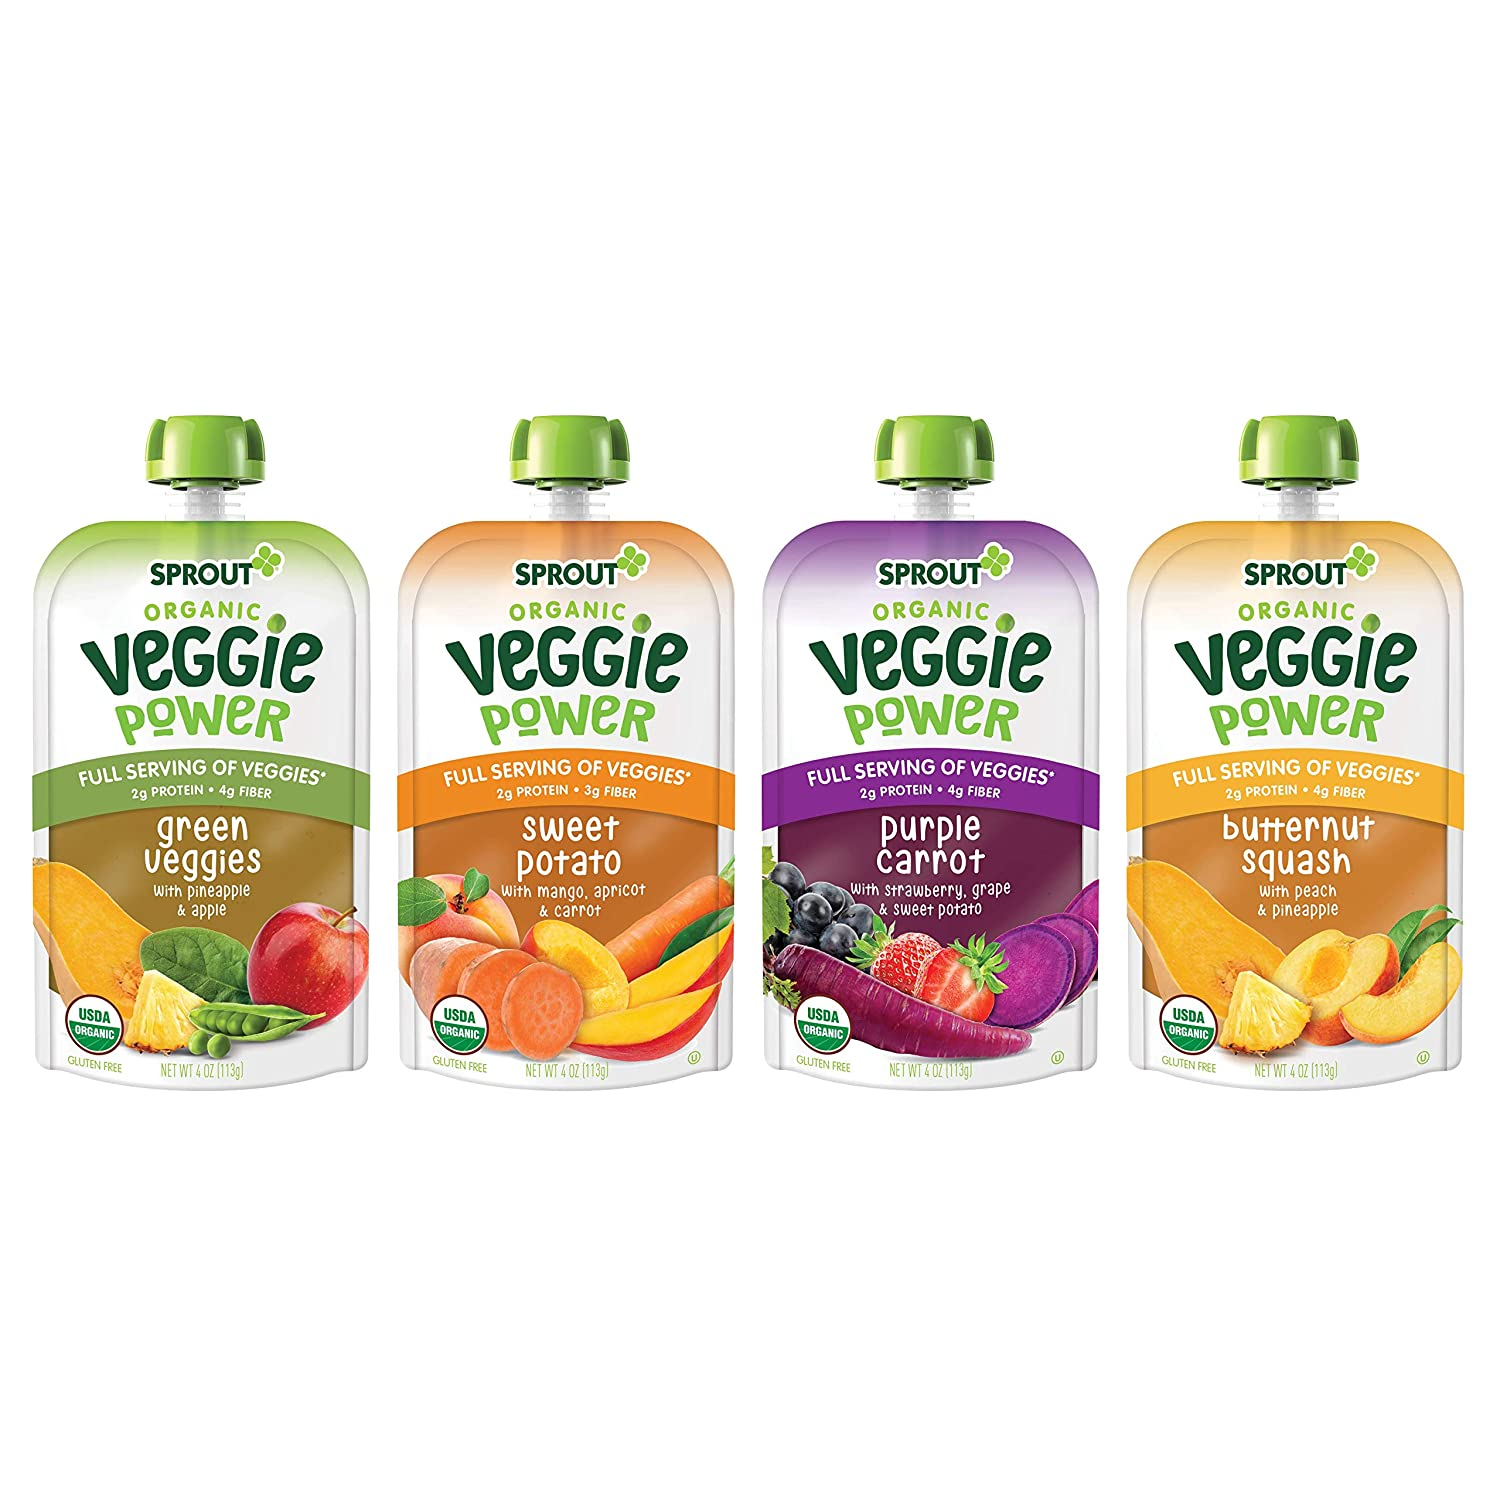 Sprout Organic Baby Food Toddler Veggie Power Pouches Stage 4, Variety Pack, 4 Flavors, 4 Ounce Pouches (3 Each)